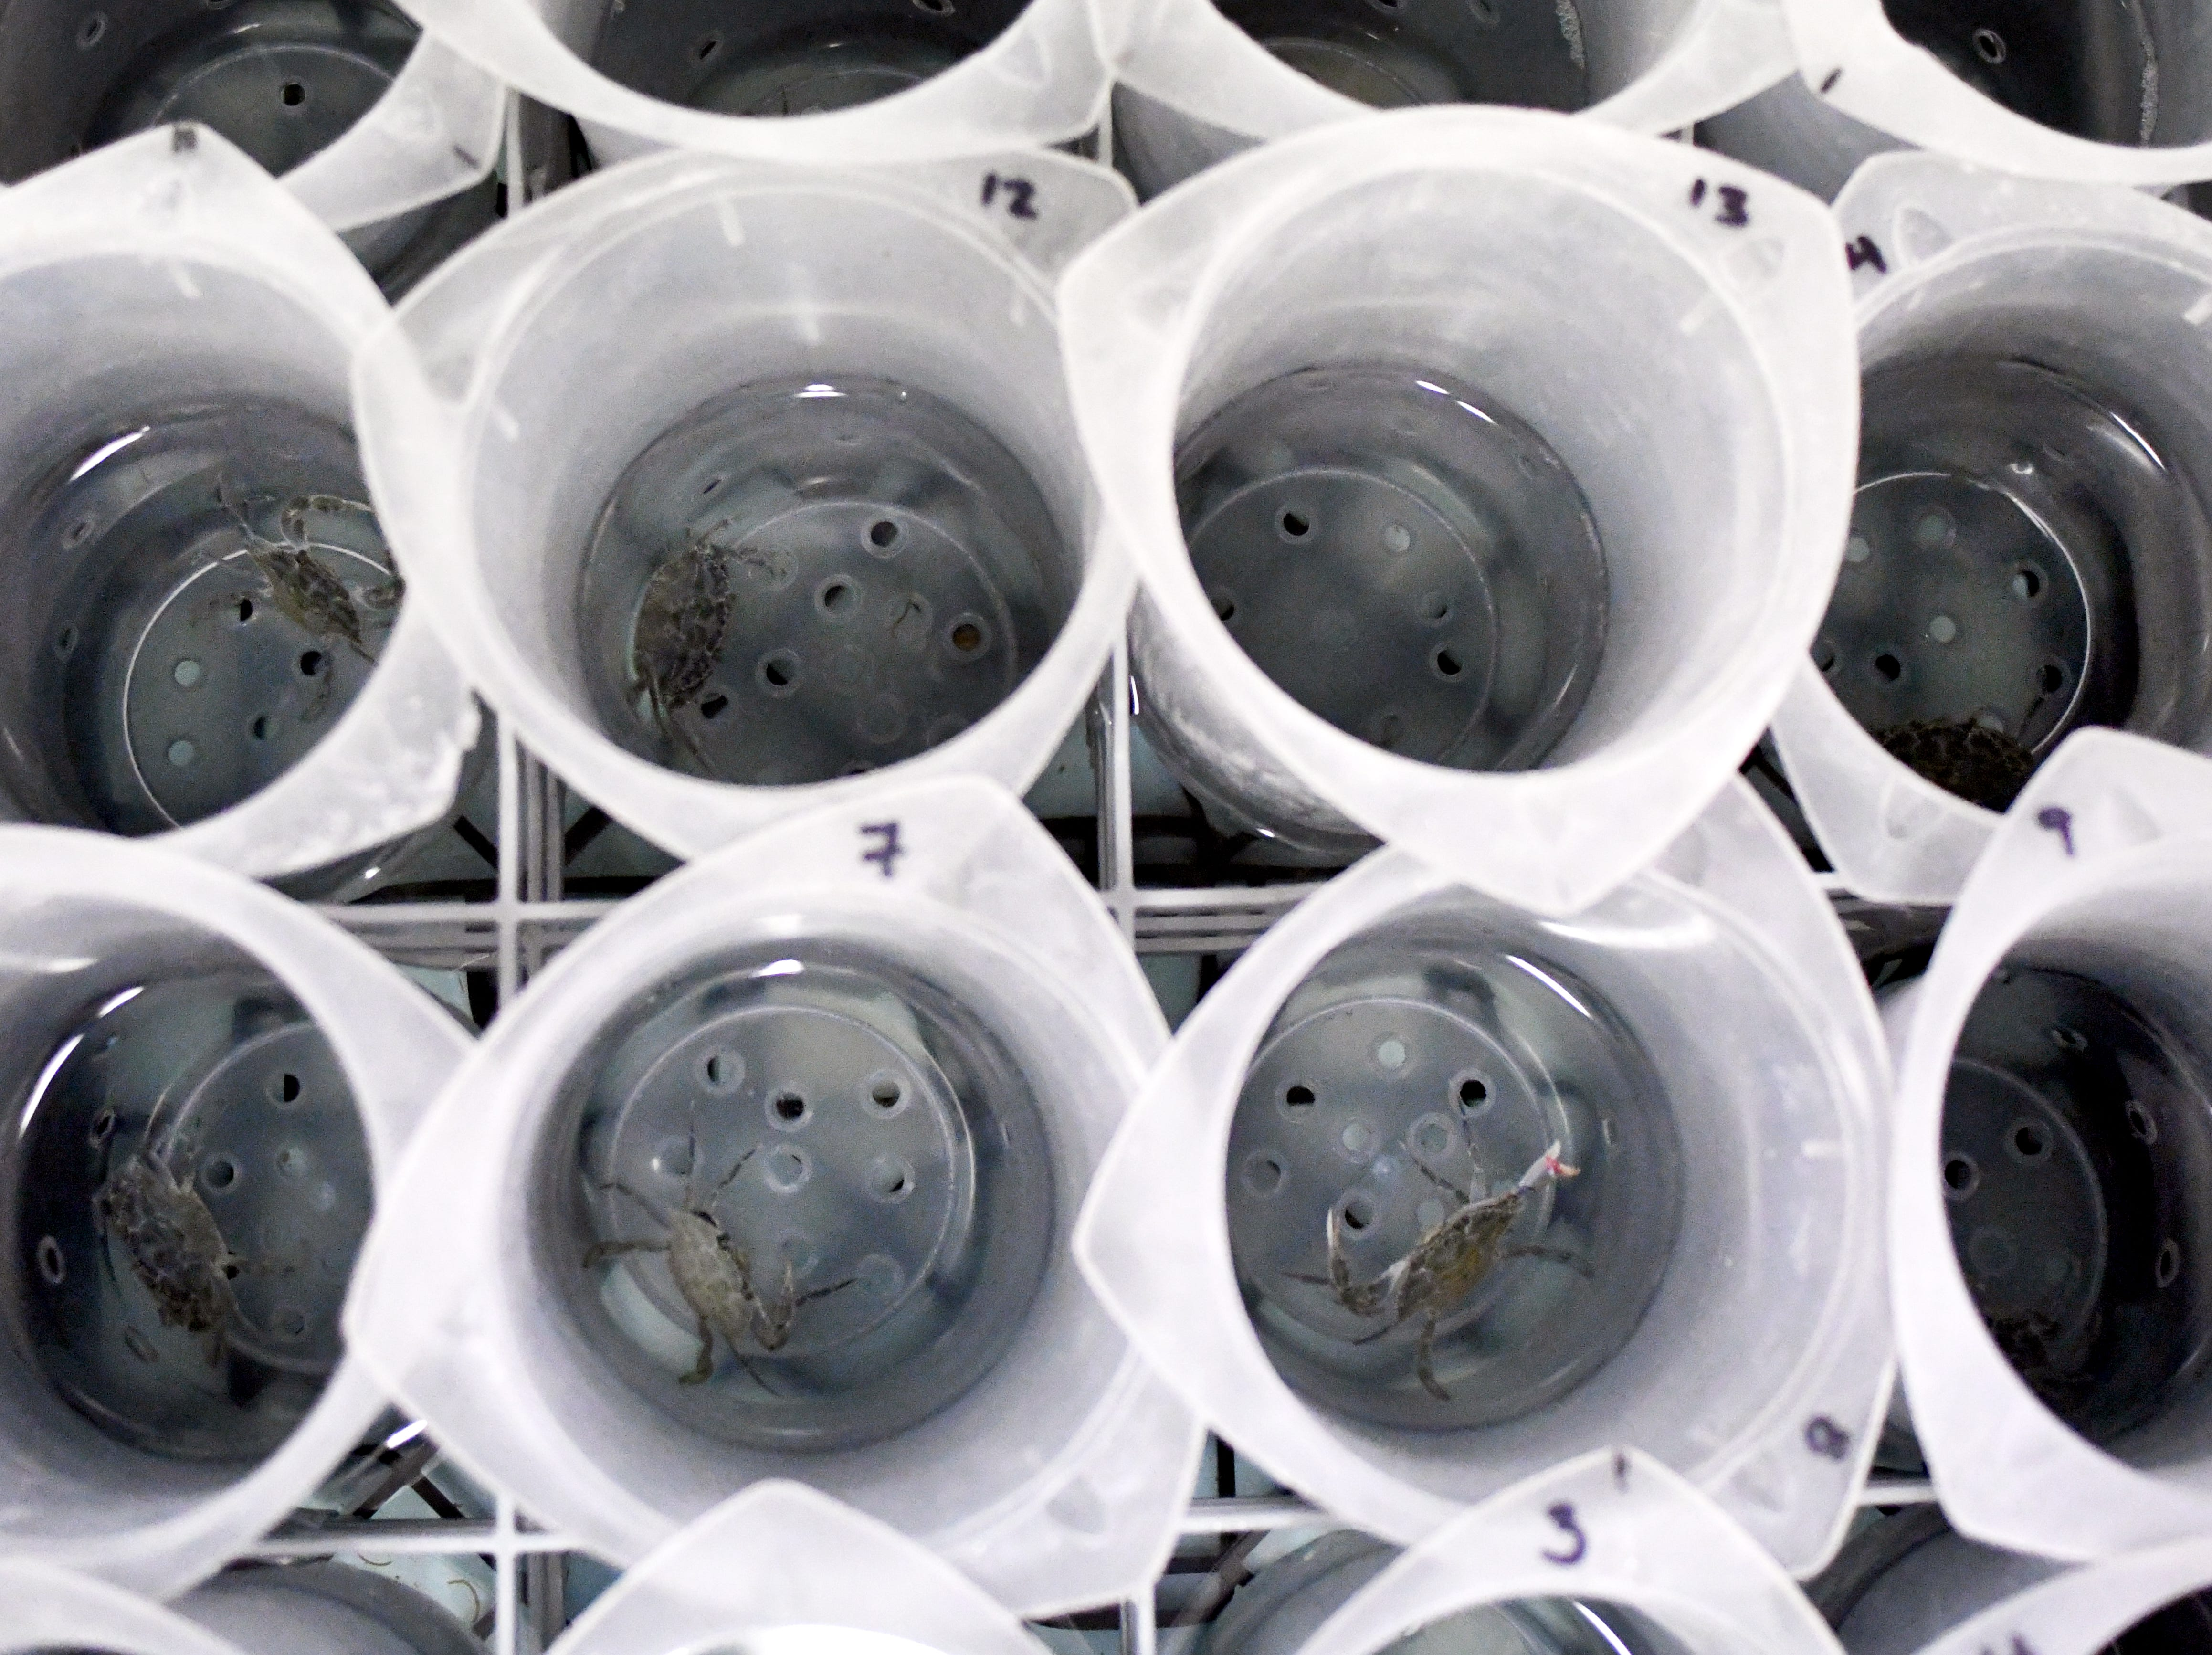 Scientists at the University of Southern Mississippi are working at the nation's only blue crab hatchery to diversify the blue crab industry for fishermen.